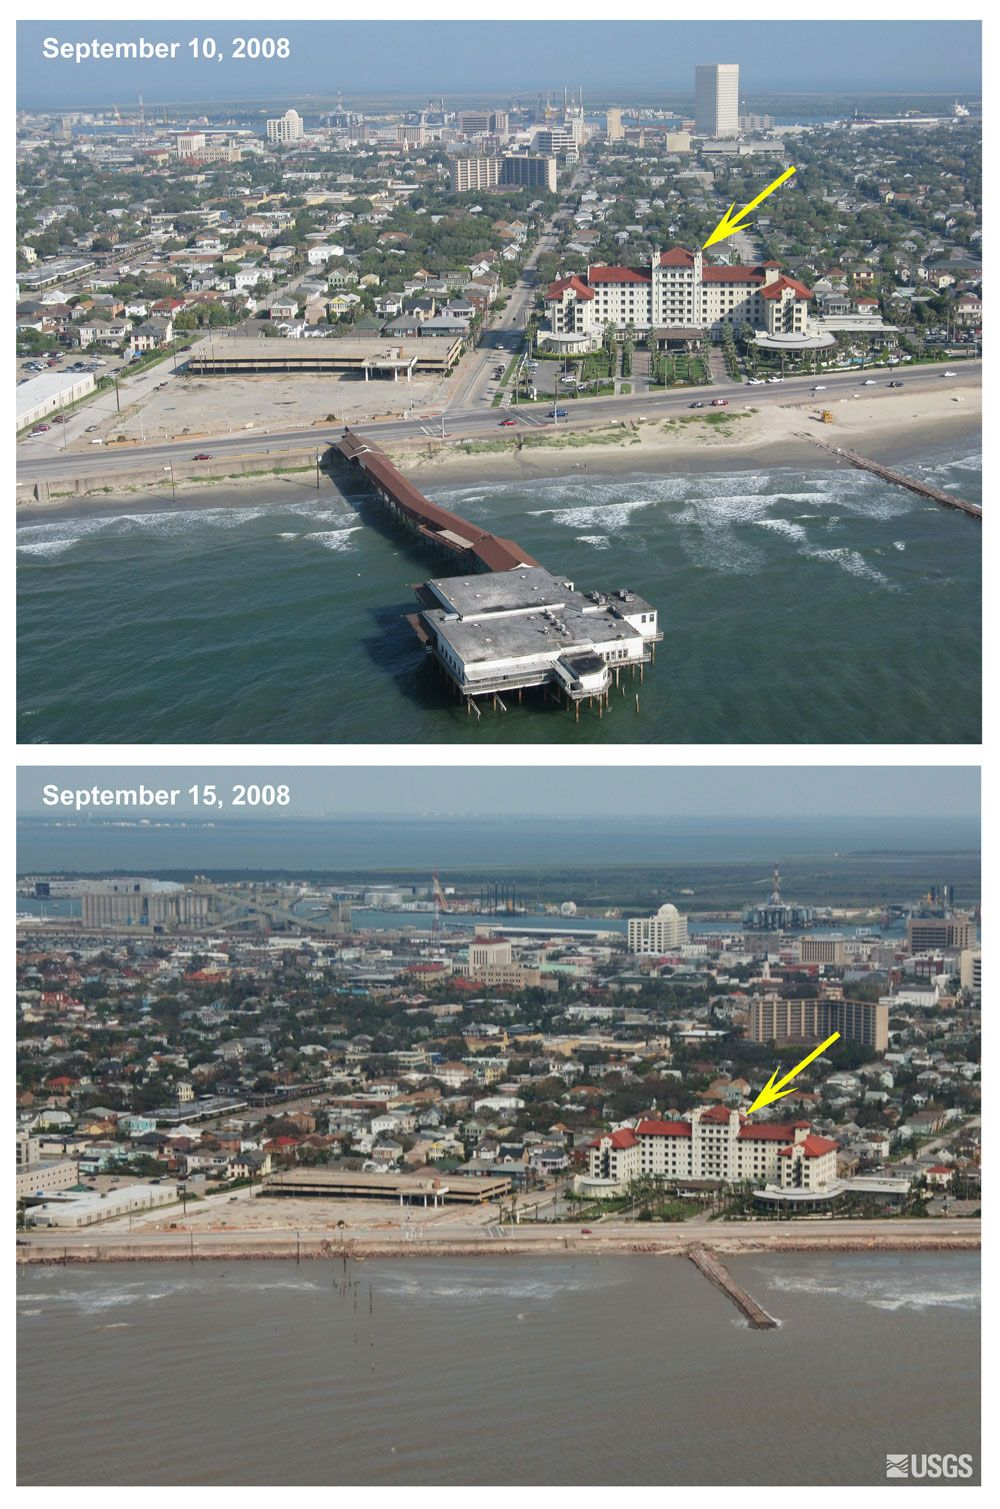 Pre And Post Storm Photo Comparisons Galveston Tx Hurricane Ike Coastal Change Hazards Hurricanes And Ext Galveston Hurricane Galveston Texas Galveston